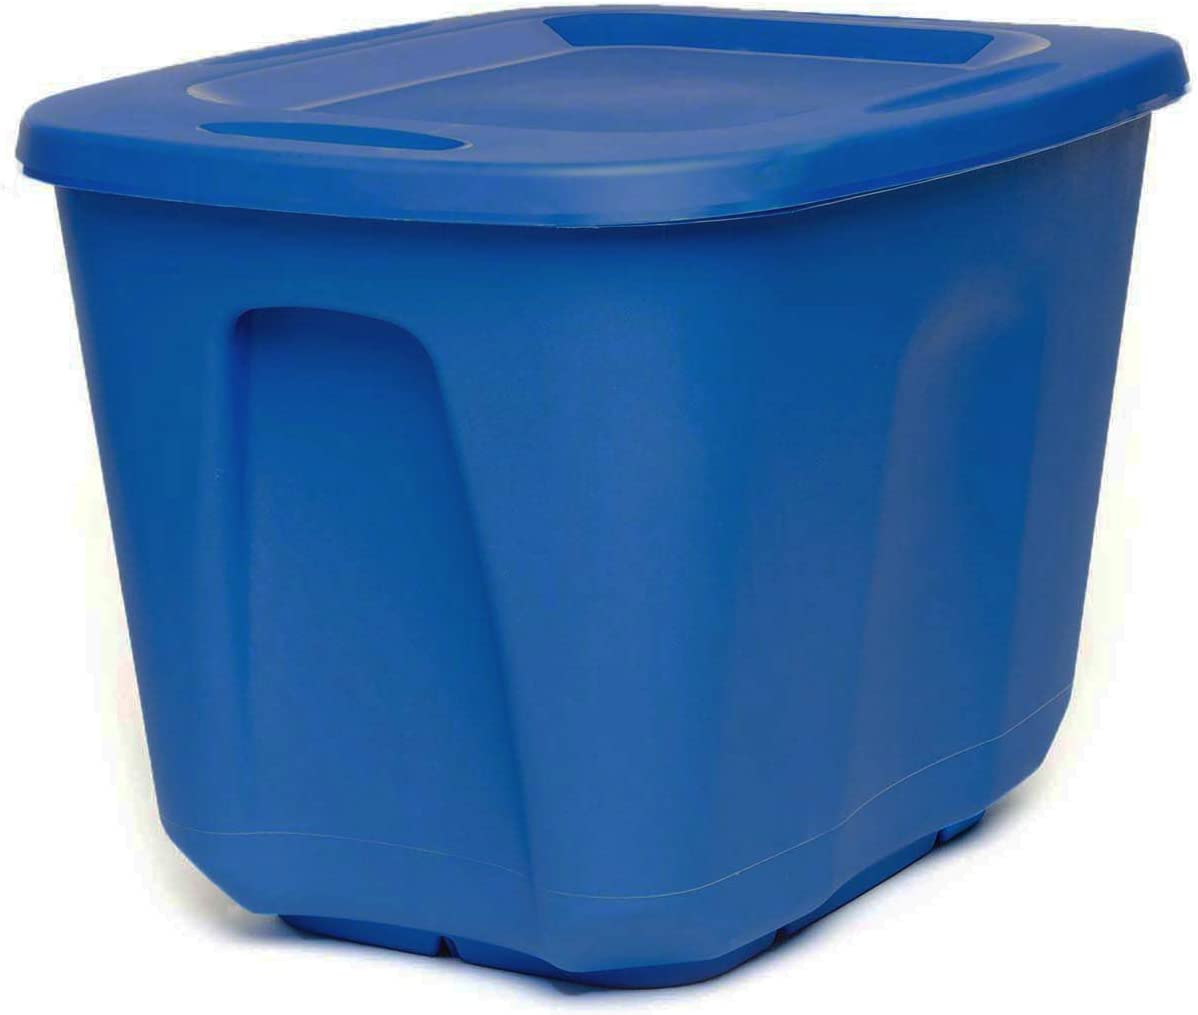 HOMZ Plastic Container 10 Gallon Storage, Blue, 4 Pack